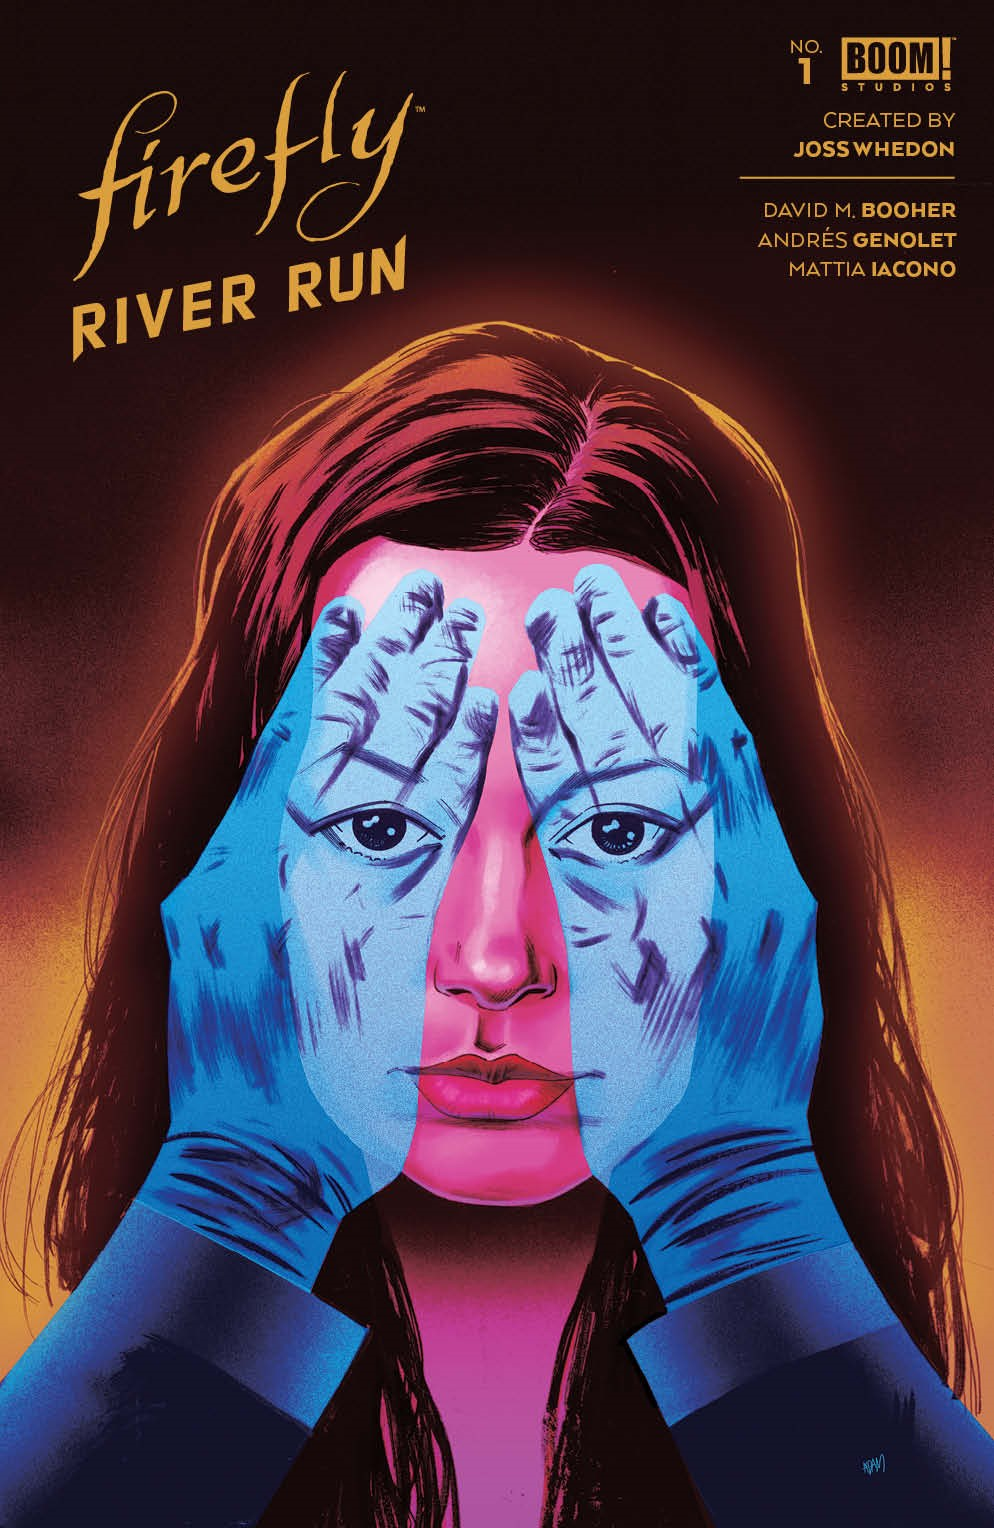 Firefly_RiverRun_001_Cover_C2_Variant ComicList Previews: FIREFLY RIVER RUN #1